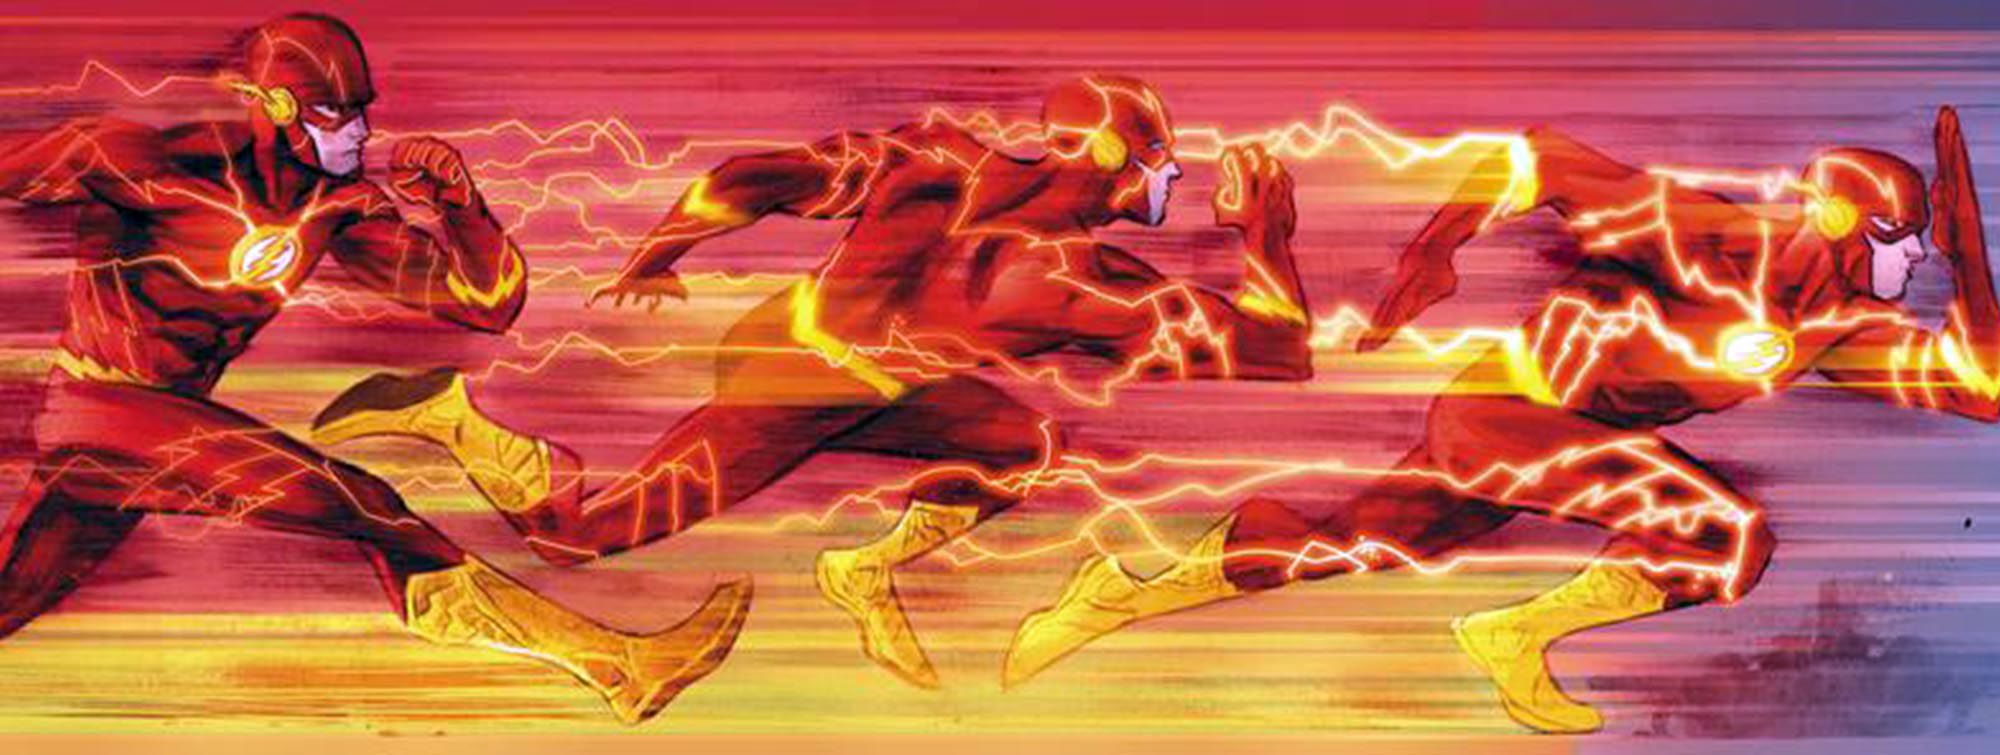 DC Comics: [Spoiler] Outruns Barry Allen To Become The Fastest Man Alive